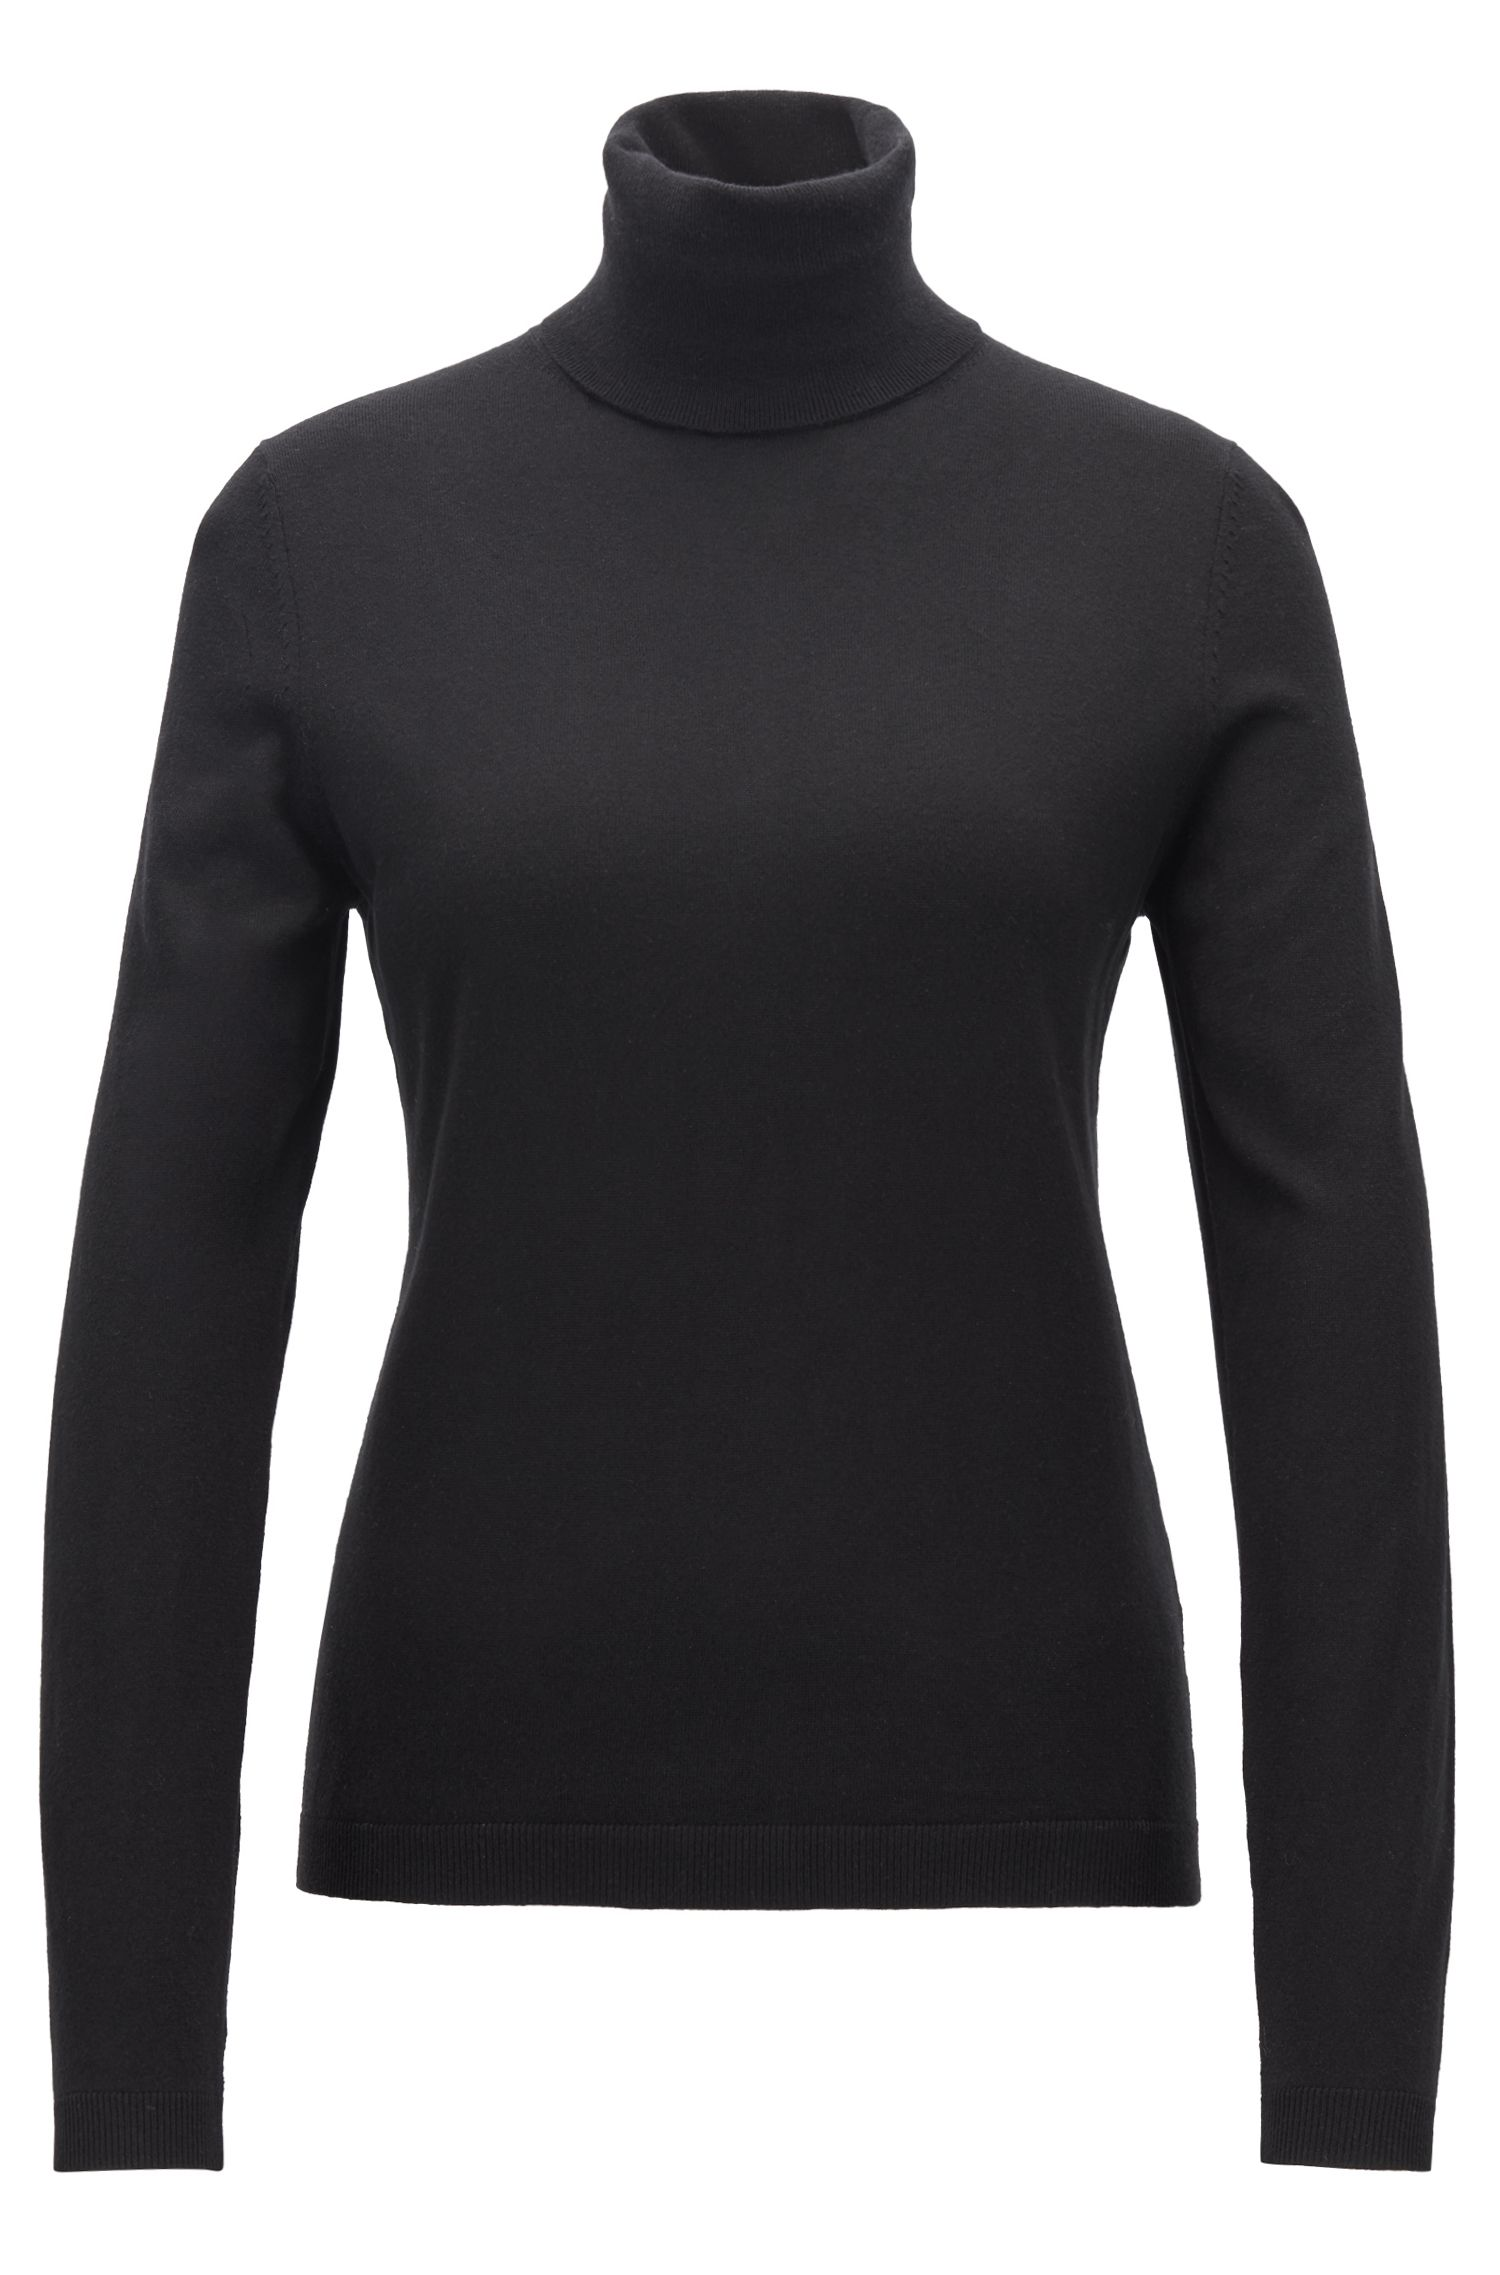 Roll-neck sweater in a cotton blend with cashmere, Black